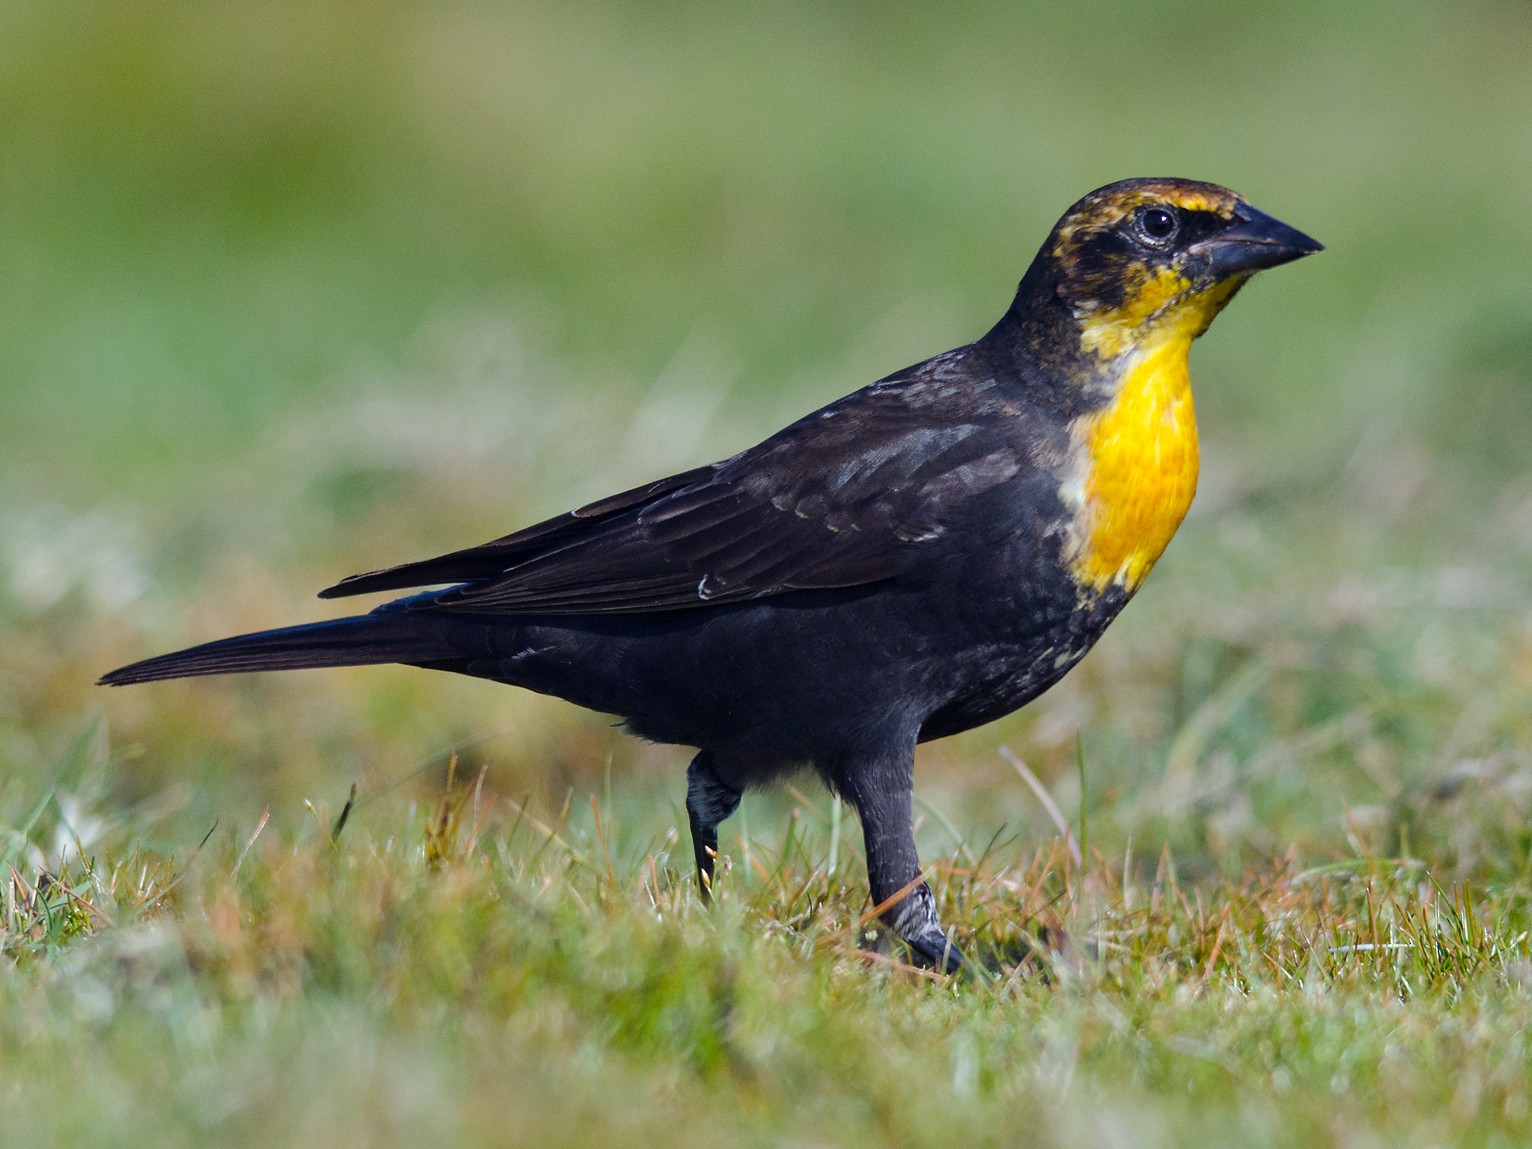 Yellow-headed Blackbird - Alix d'Entremont